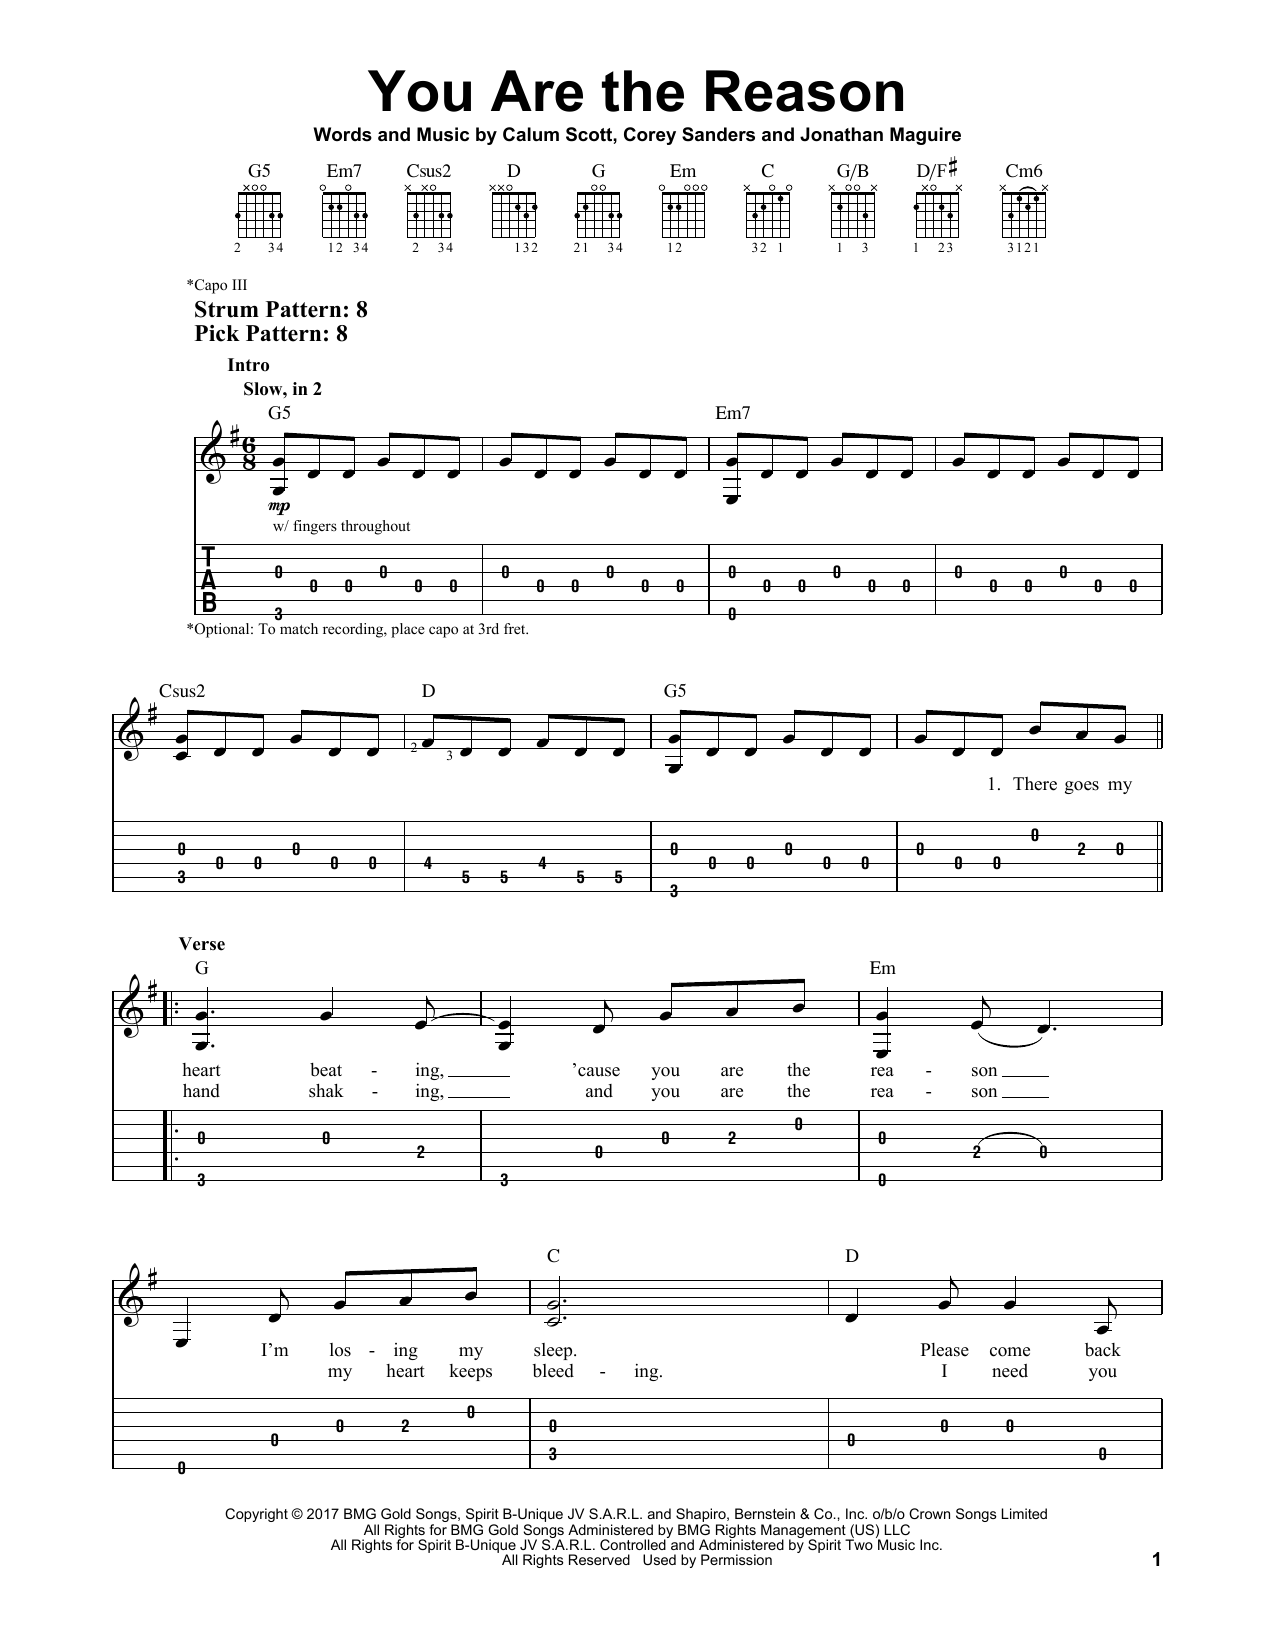 Calum Scott 'You Are The Reason' Sheet Music, Notes & Chords